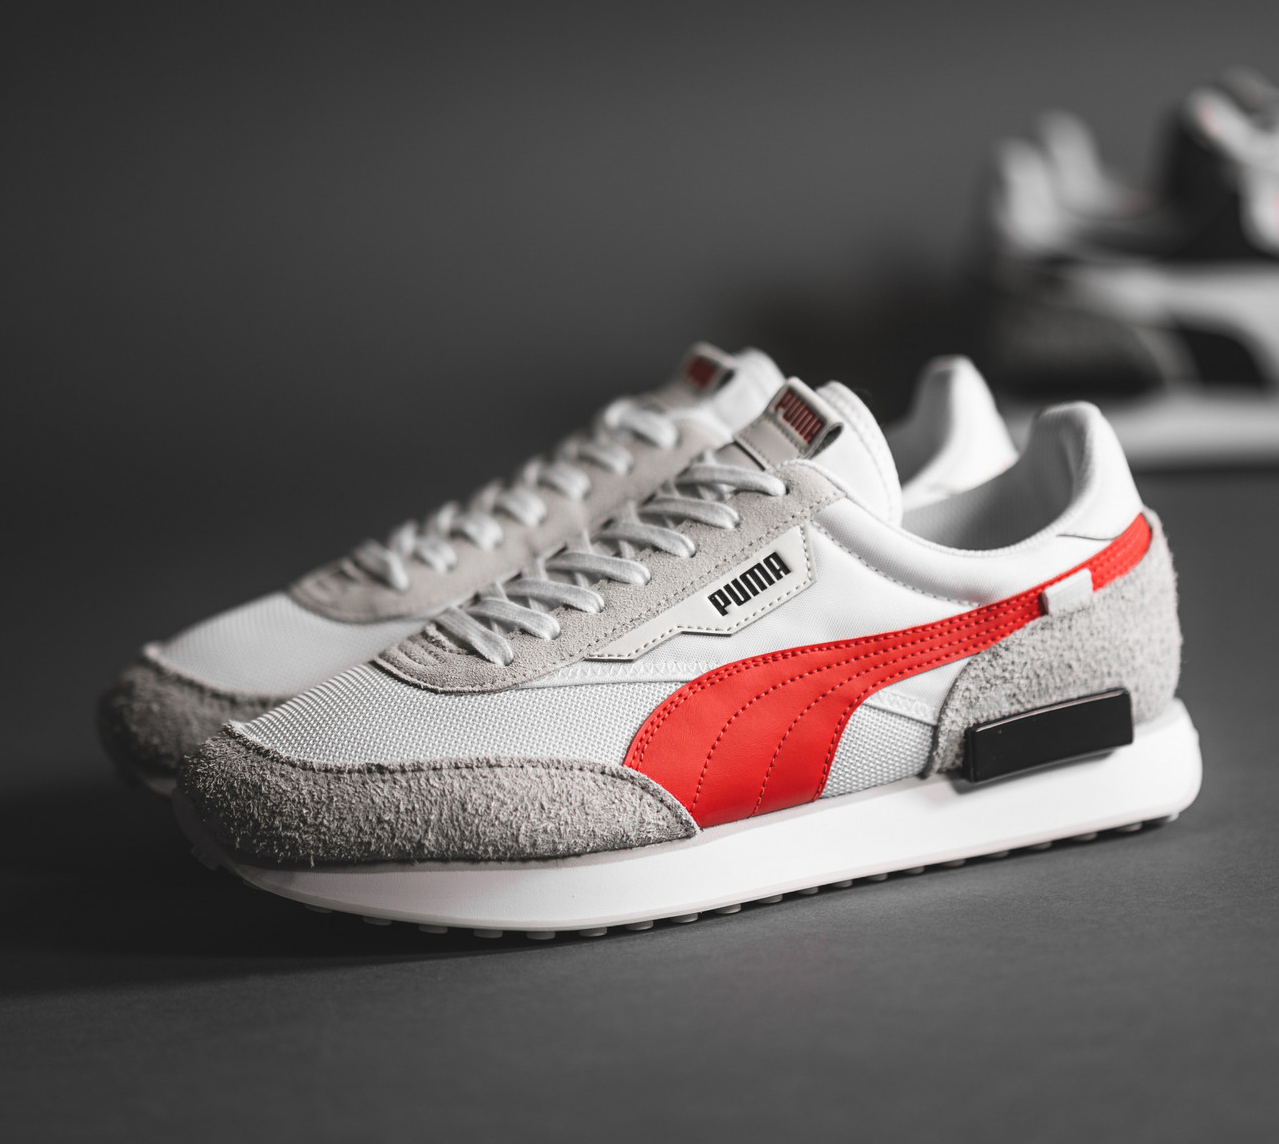 puma-future-rider-vintage-white-red-grey-380464-03-mood-1.png